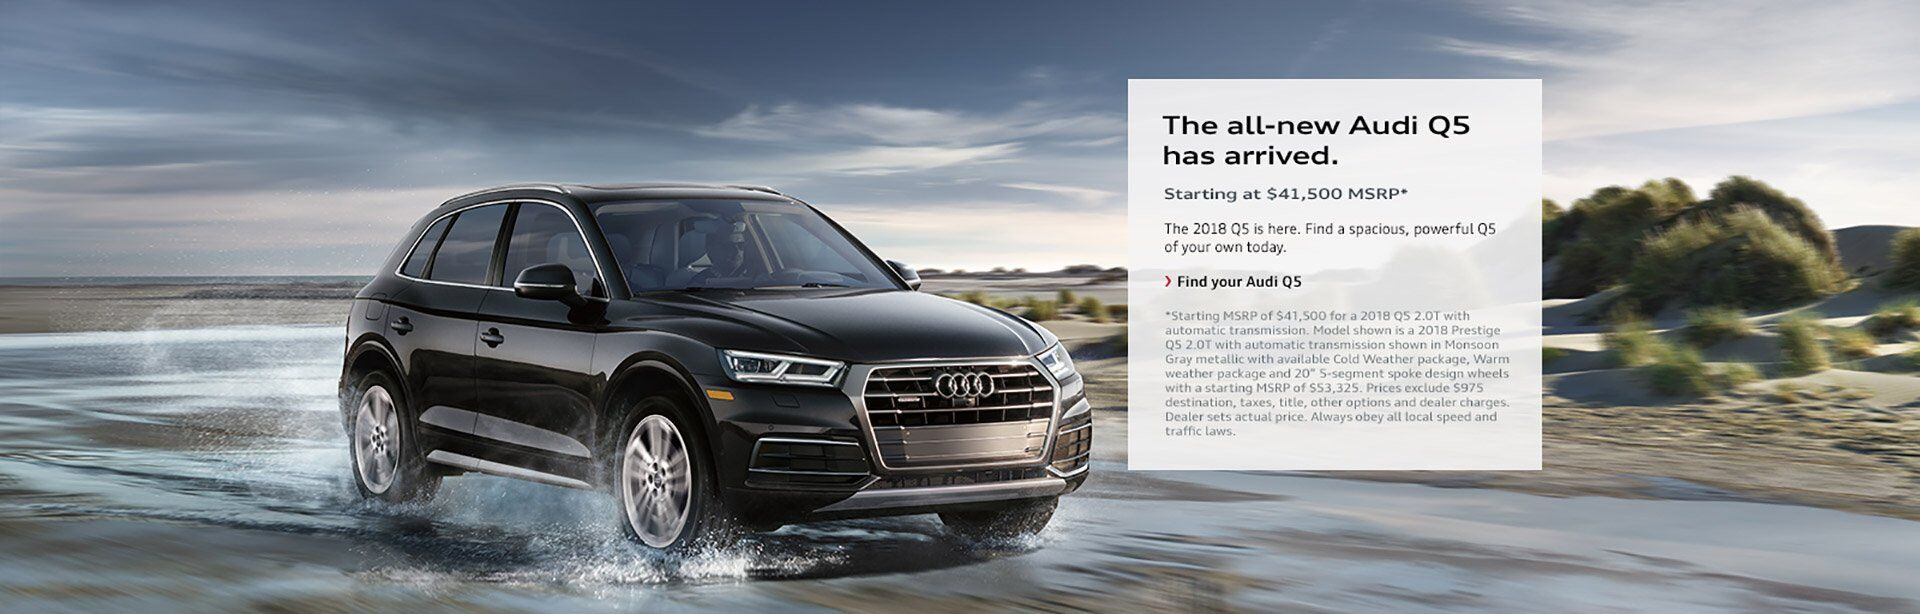 Audi Dealership Seaside Ca Used Cars Audi Monterey Peninsula